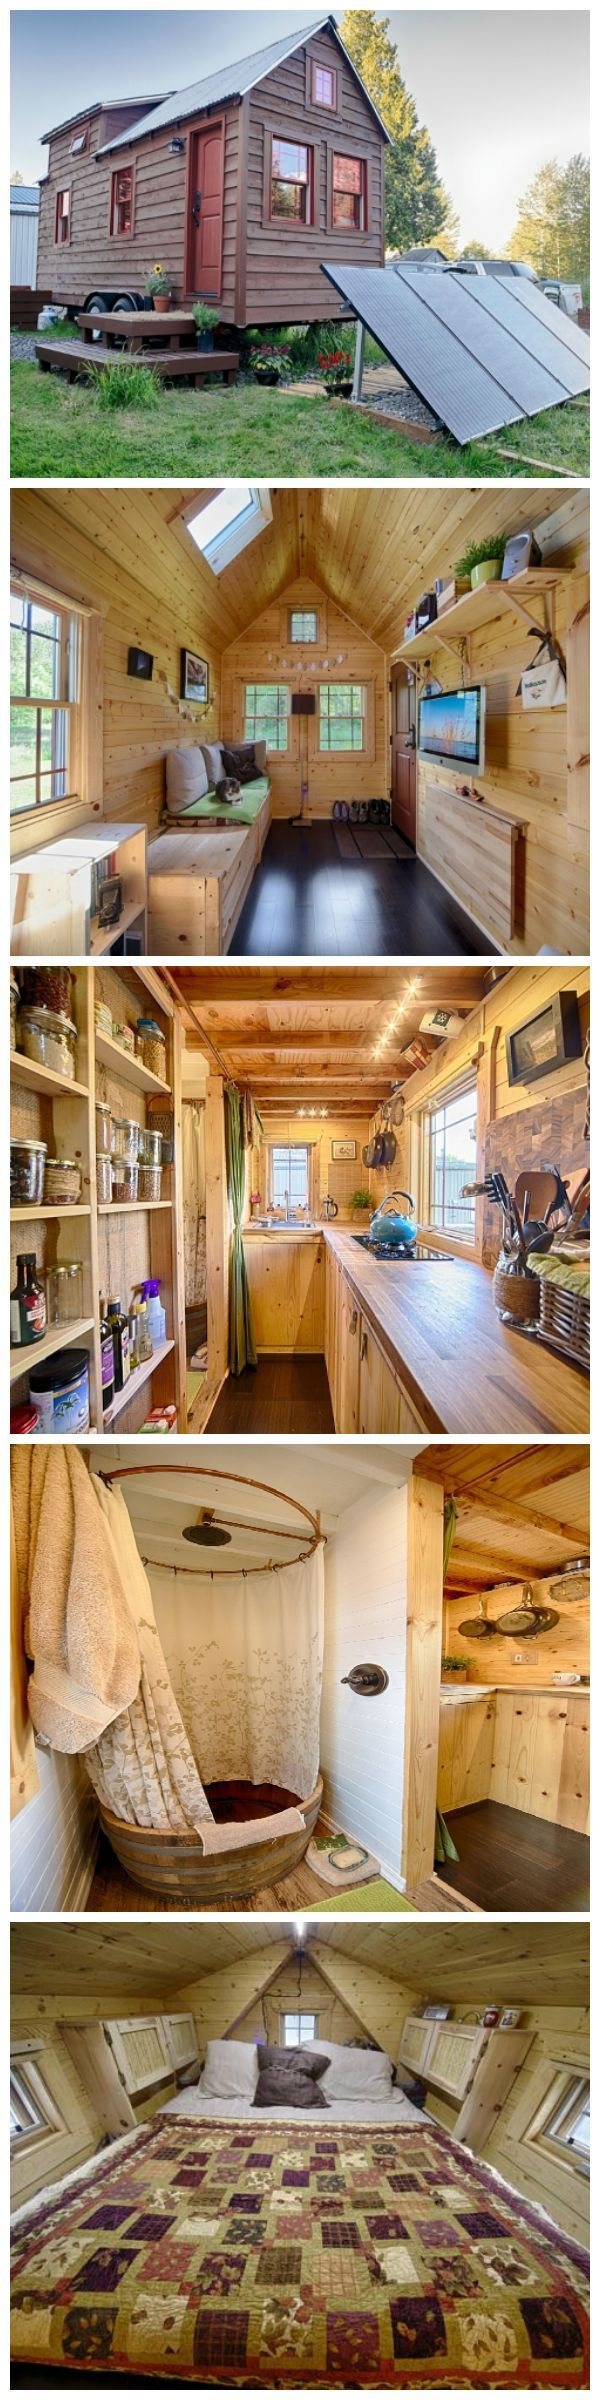 Best 25+ Cheap tiny house ideas on Pinterest | Mini house plans ...